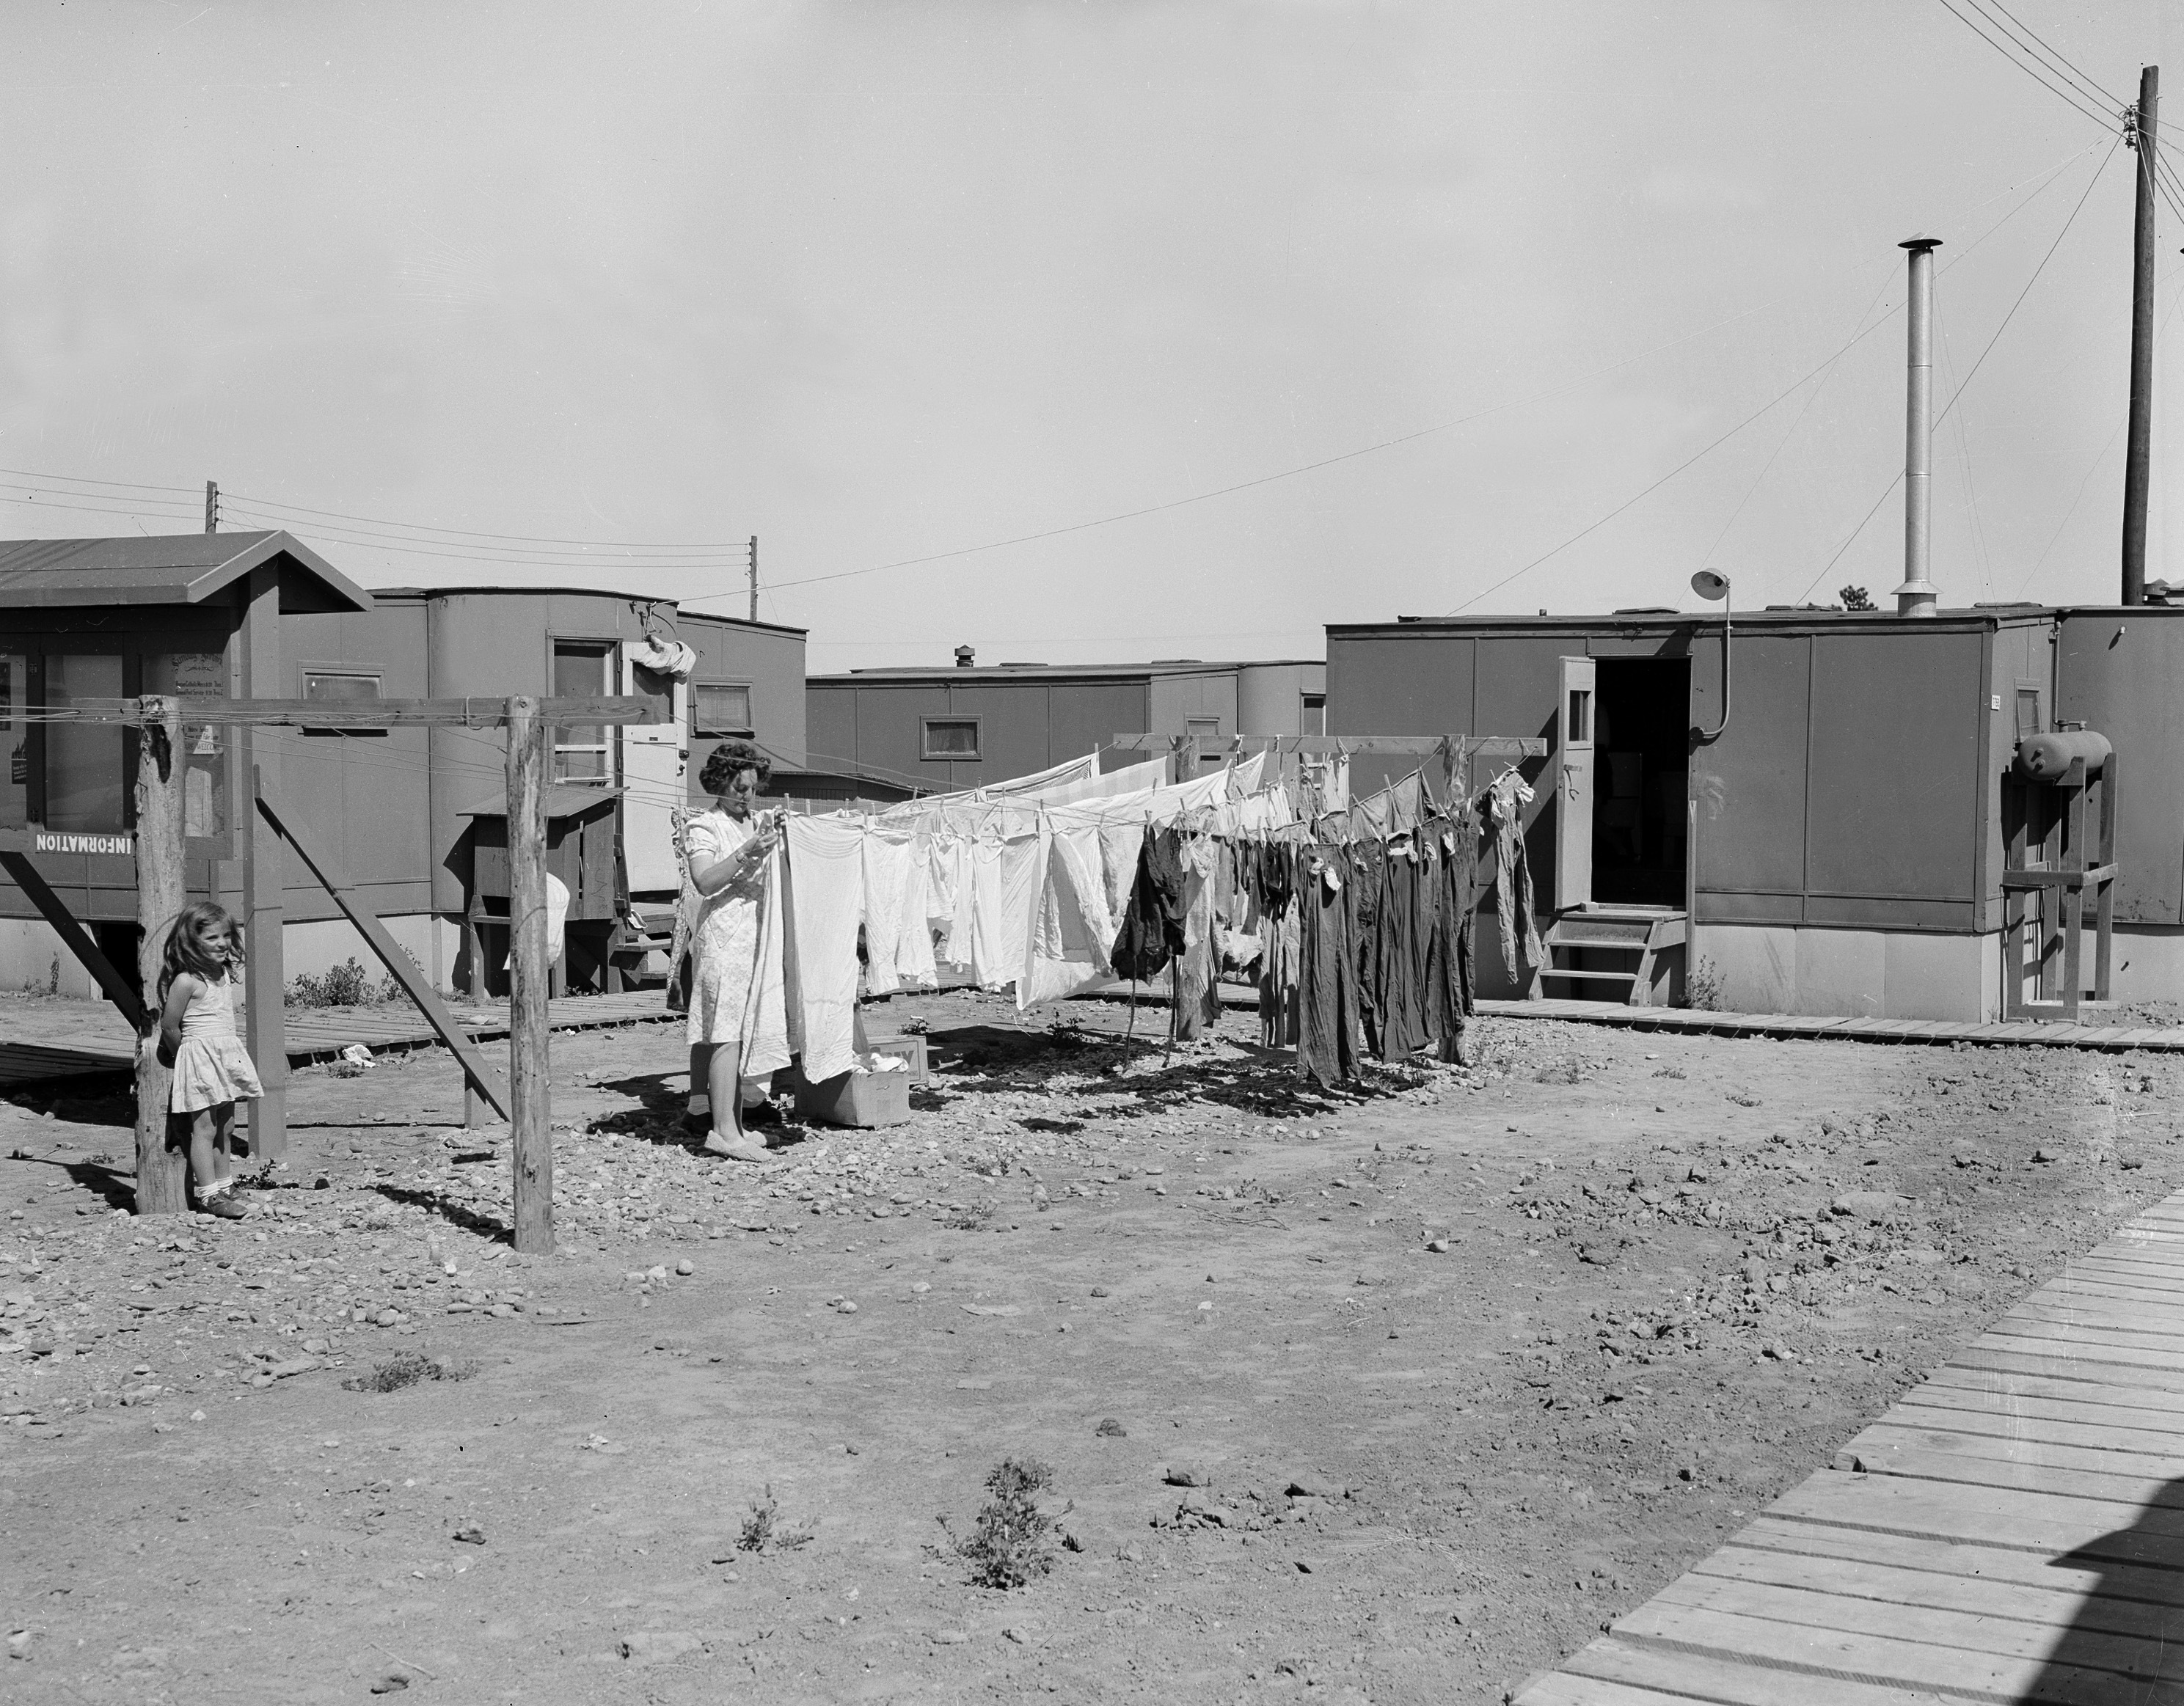 Doing laundry at Los Alamos, Photo: Los Alamos National Laboratory (CC BY-NC-ND 2.0)